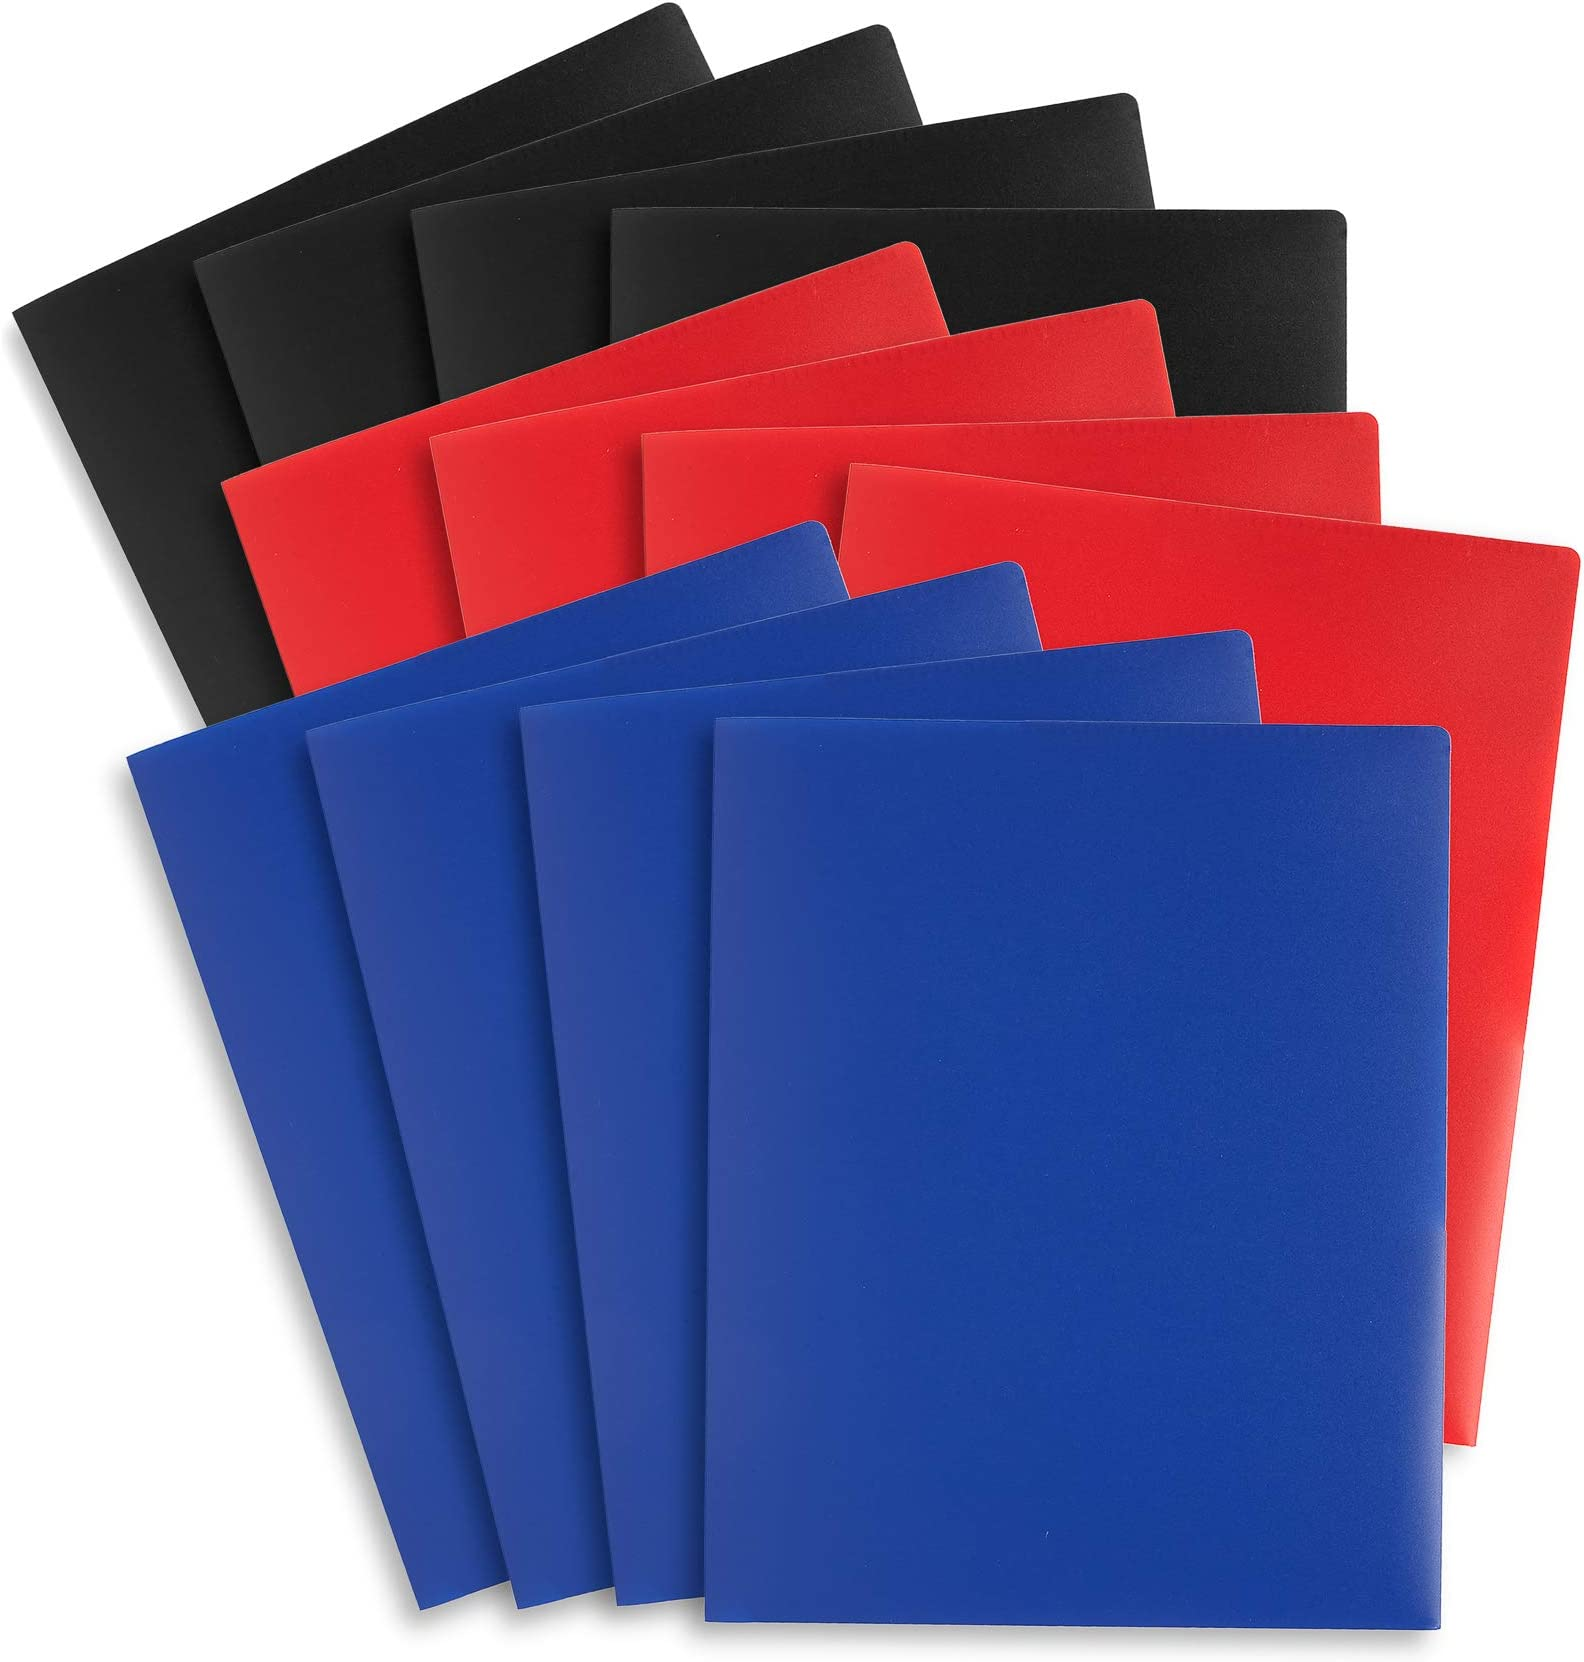 Blue Summit Supplies 6 Plastic Two Pocket Folders with Prongs Assorted Gem Tones Letter Size with Business Card Slot 6 Pack Durable Poly 2 Pocket Folders with Clasps